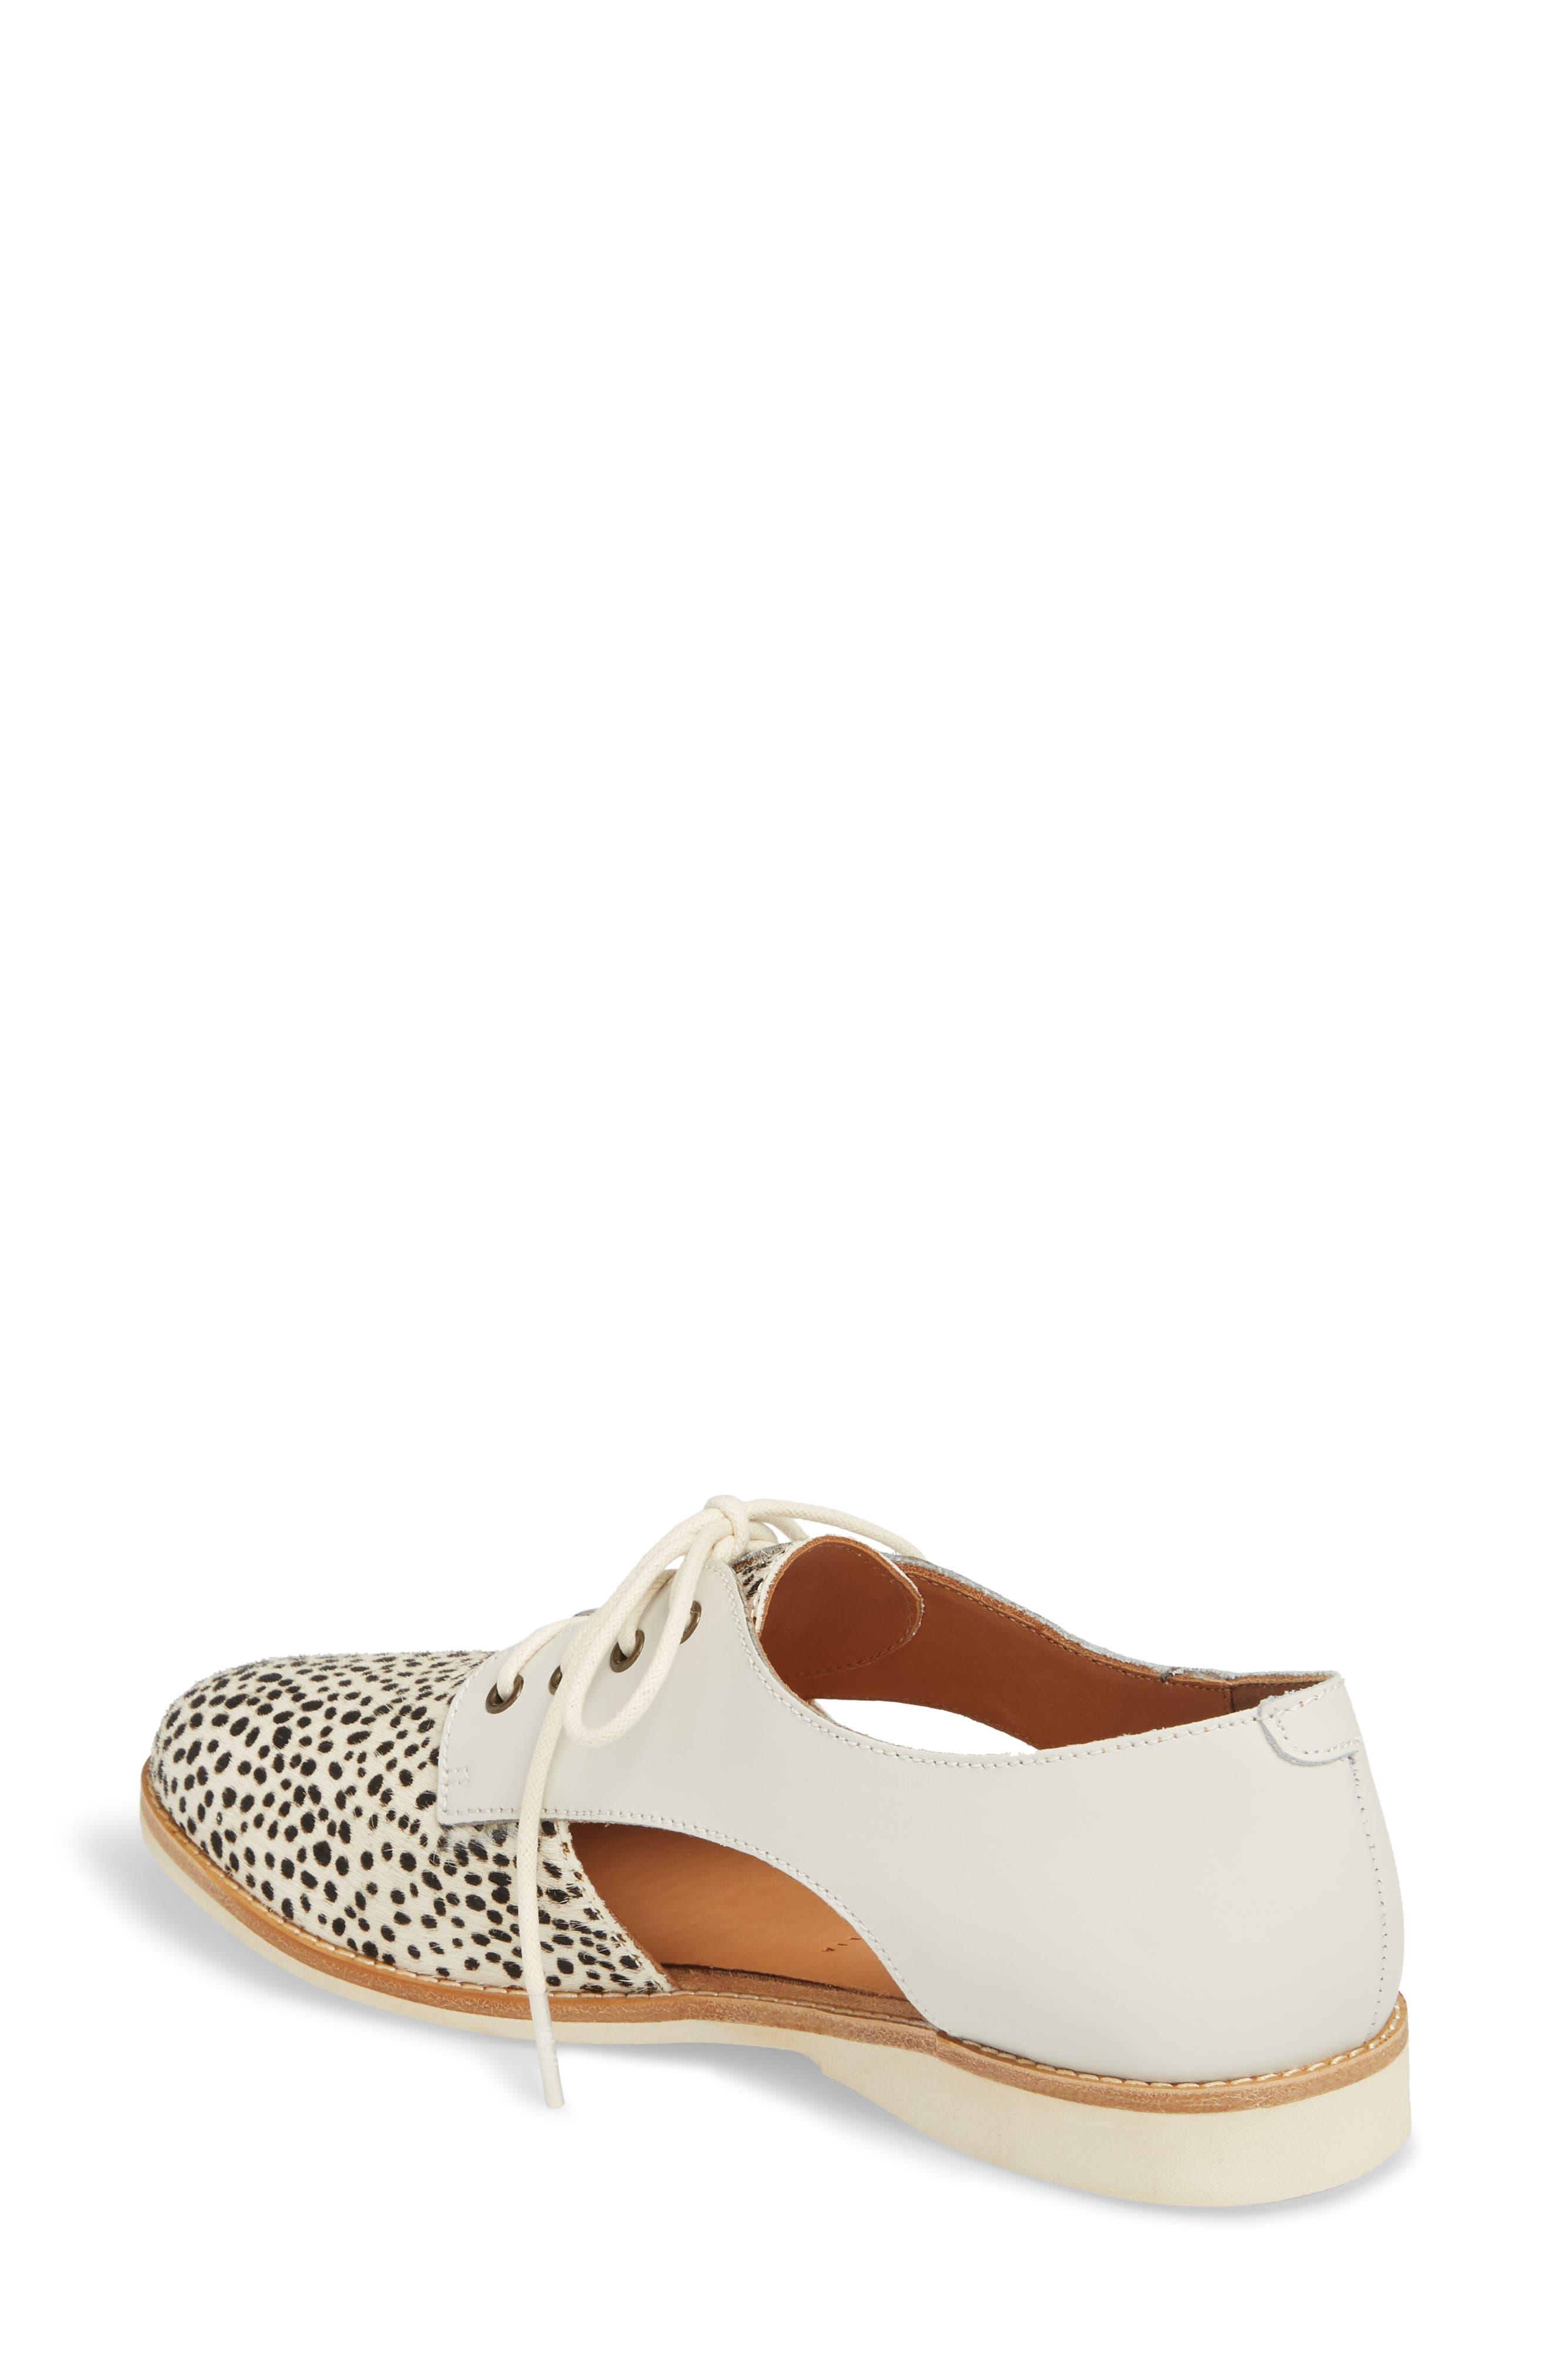 ROLLIE,                             Side Cut Derby,                             Alternate thumbnail 2, color,                             SNOW LEOPARD/ WHITE LEATHER